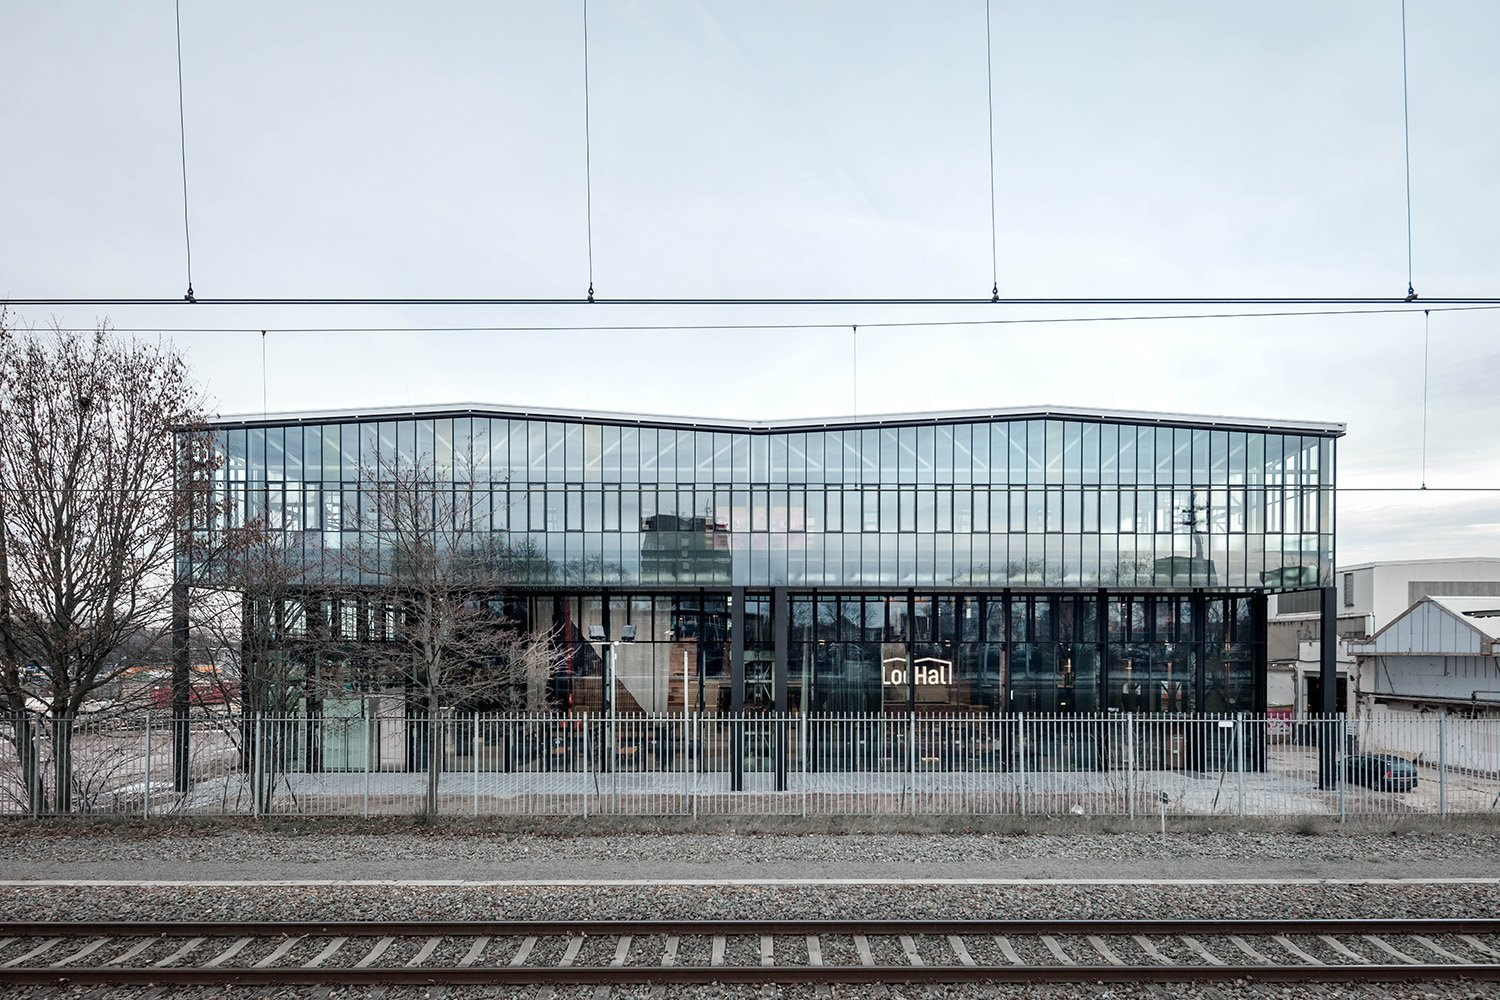 Exterior view from the train station. Stijn Bollaert